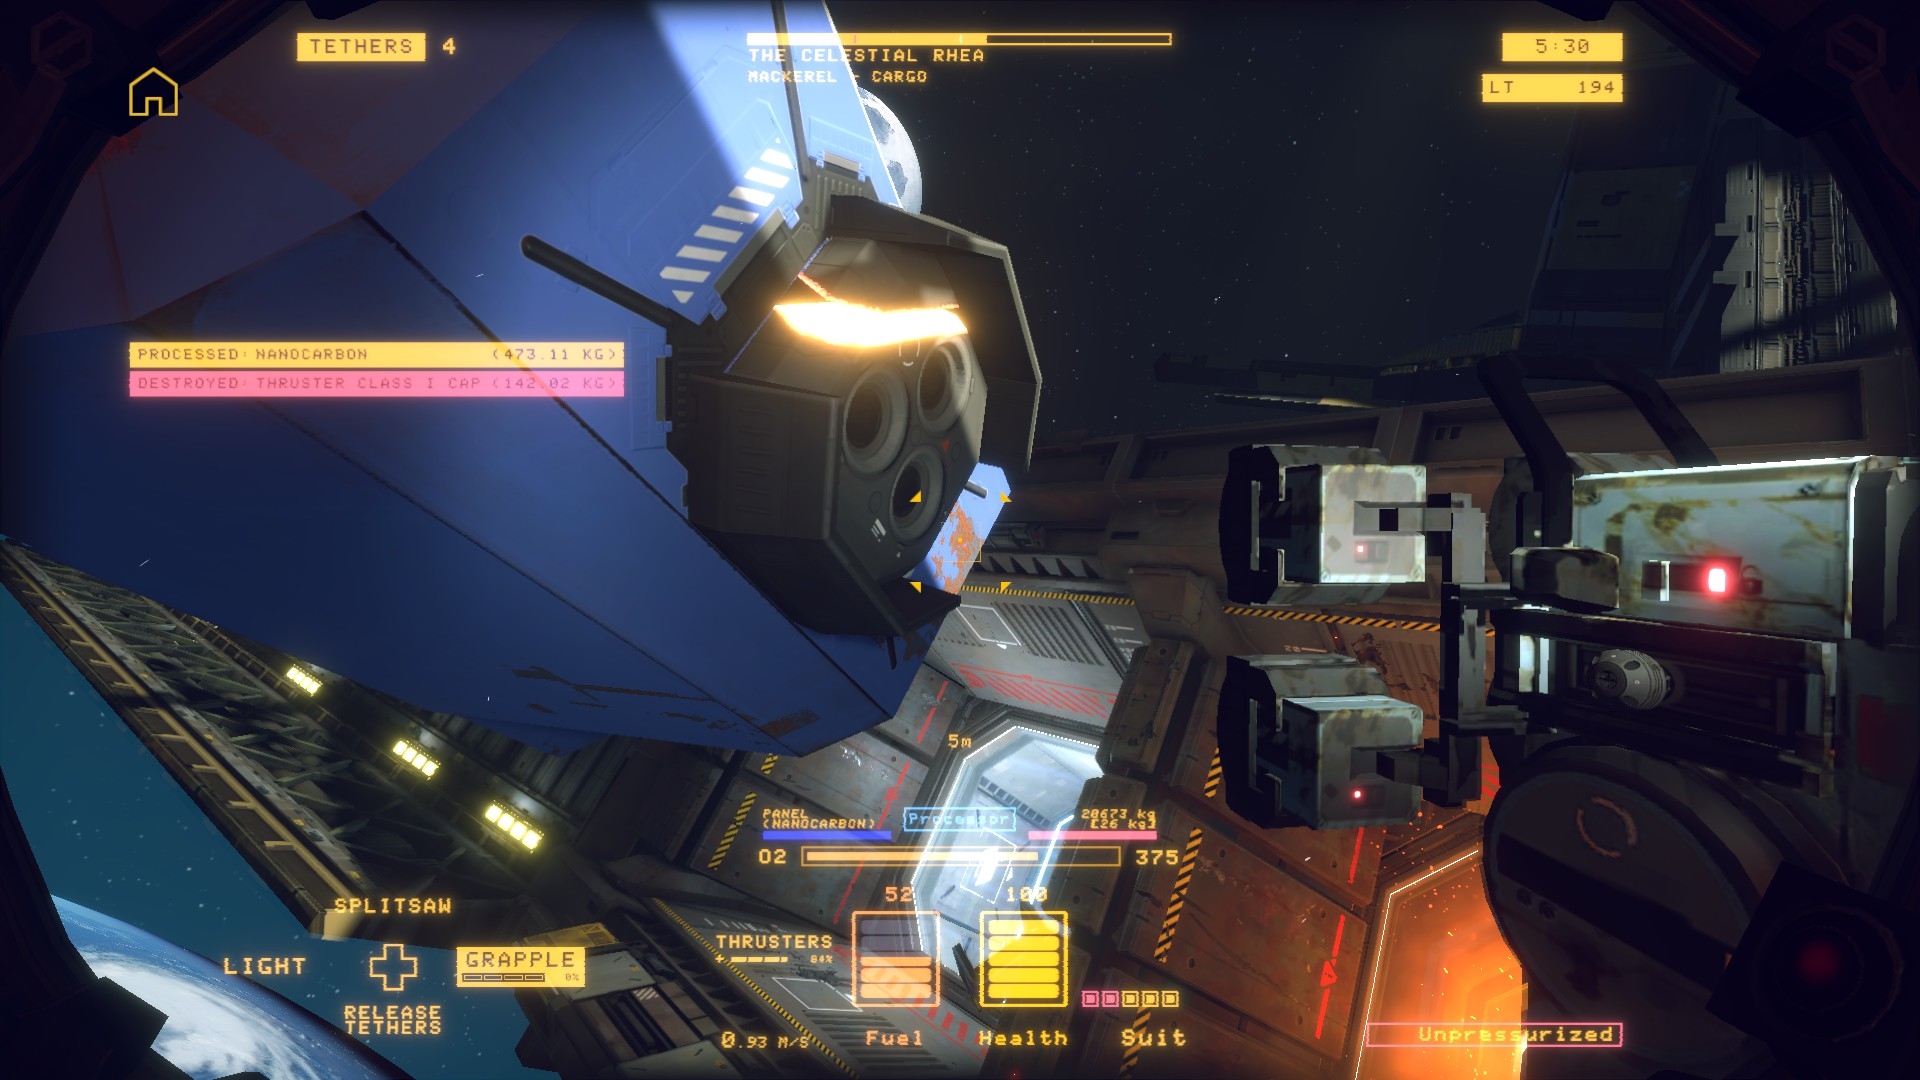 A screenshot of a valuable piece of salvage which the player has foolishly destroyed by cutting through it with the splitsaw tool